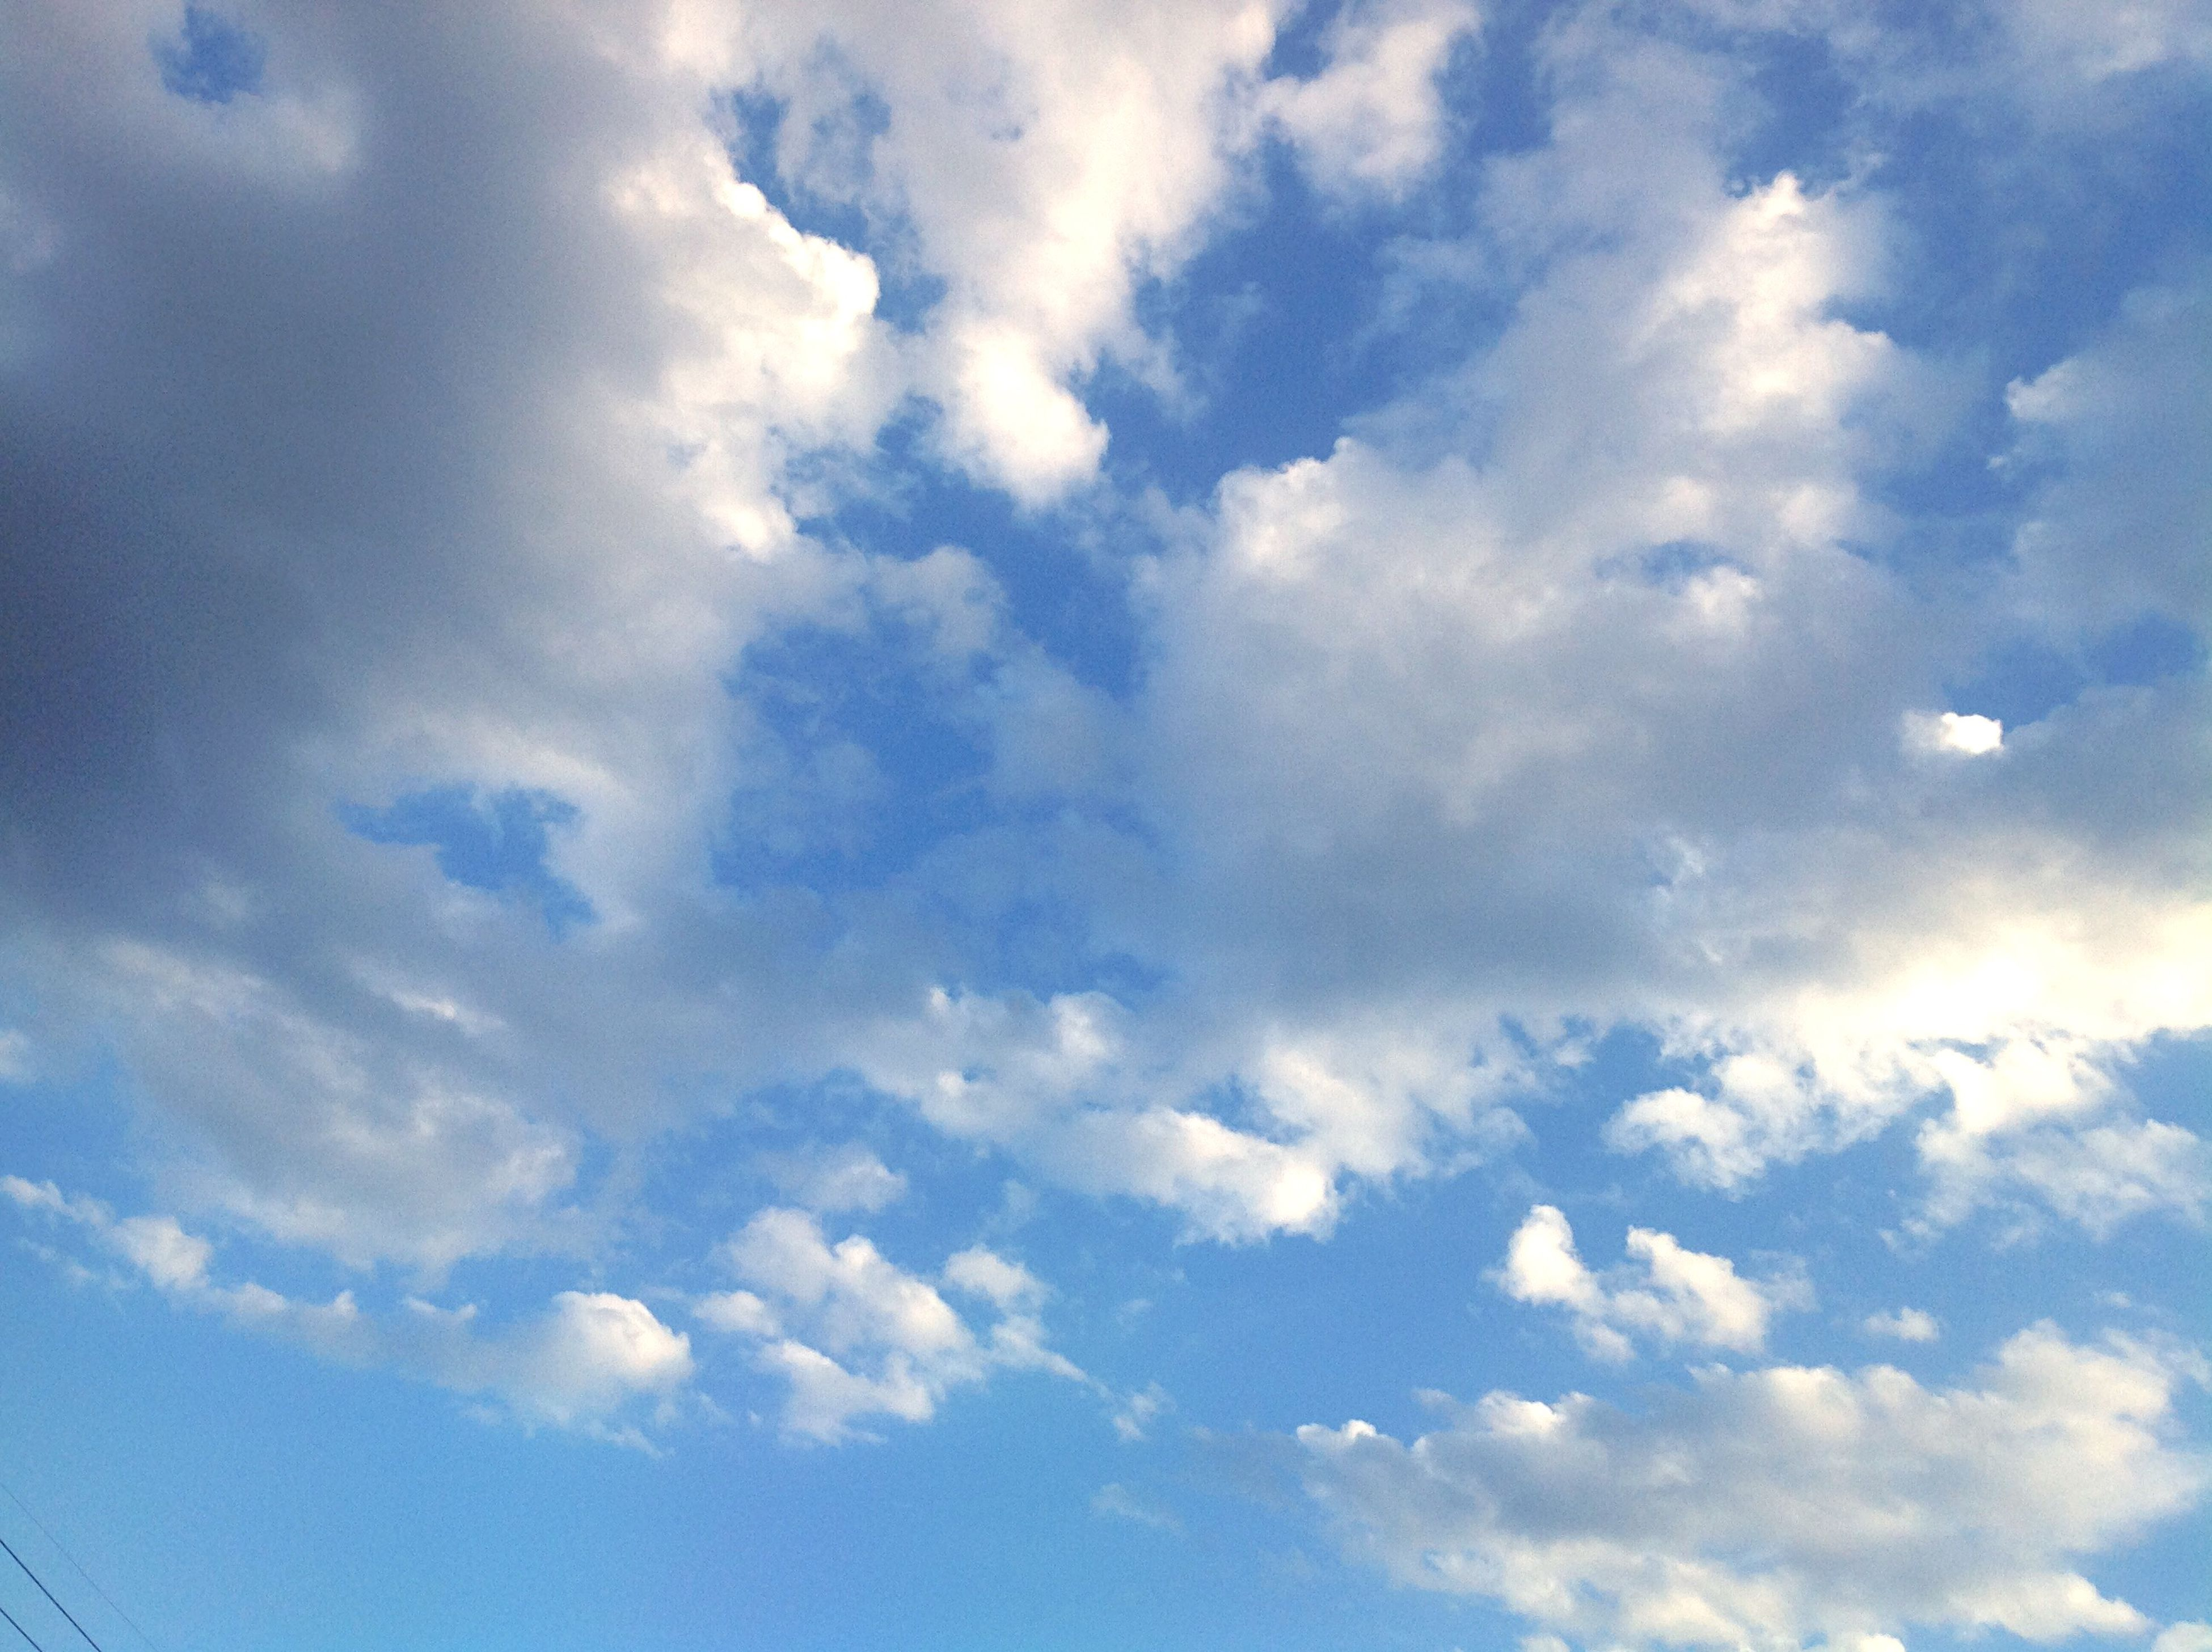 sky, low angle view, cloud - sky, blue, sky only, beauty in nature, tranquility, scenics, cloudy, nature, cloudscape, cloud, backgrounds, tranquil scene, full frame, idyllic, white color, outdoors, day, no people